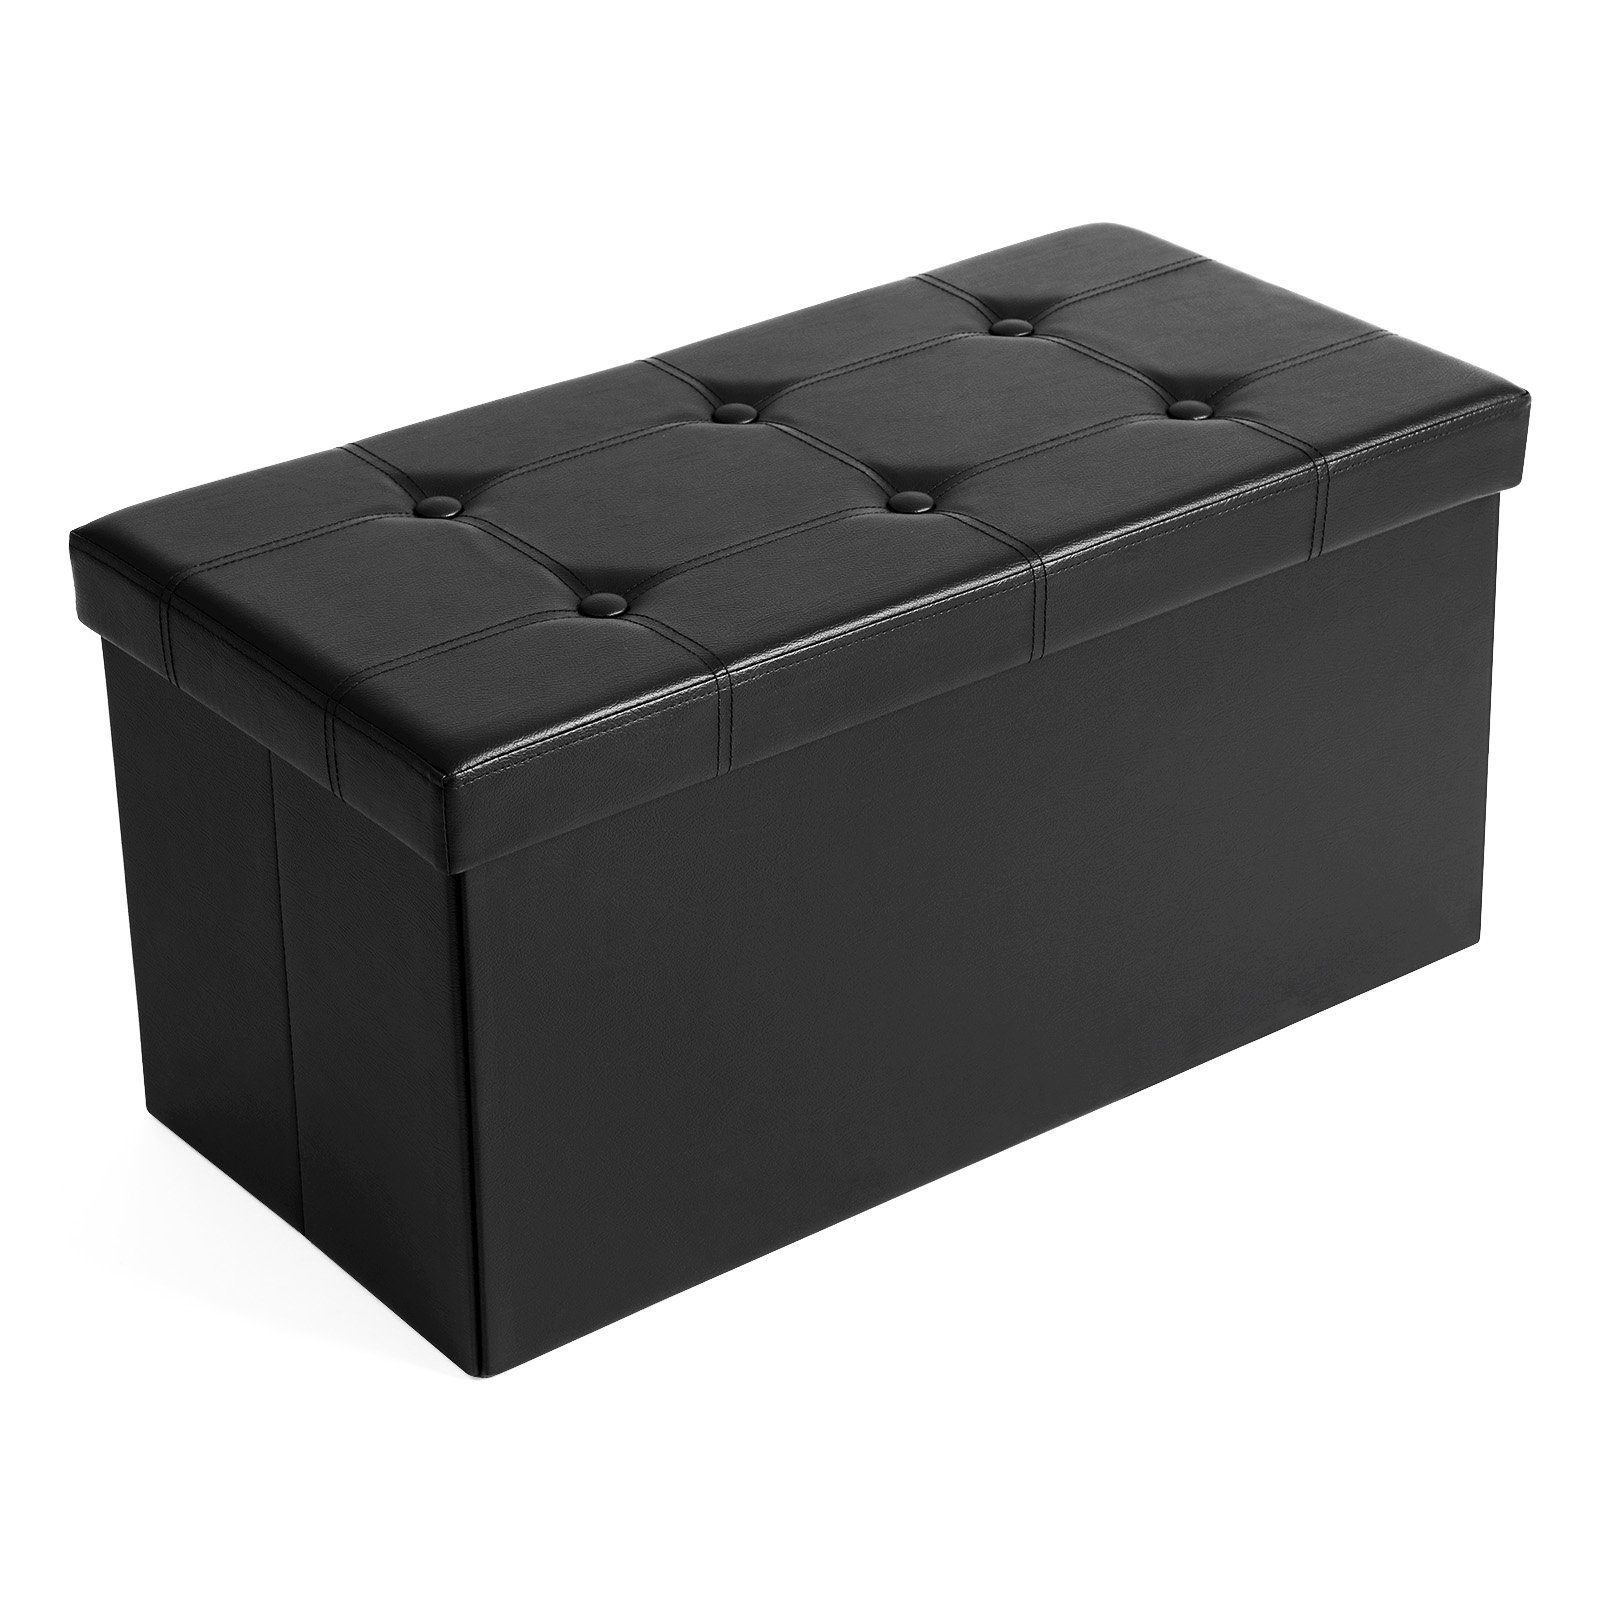 SONGMICS 30'' L Faux Leather Folding Storage Ottoman Bench, Storage Chest/Footrest/Coffee Table/Padded Seat, Black ULSF105